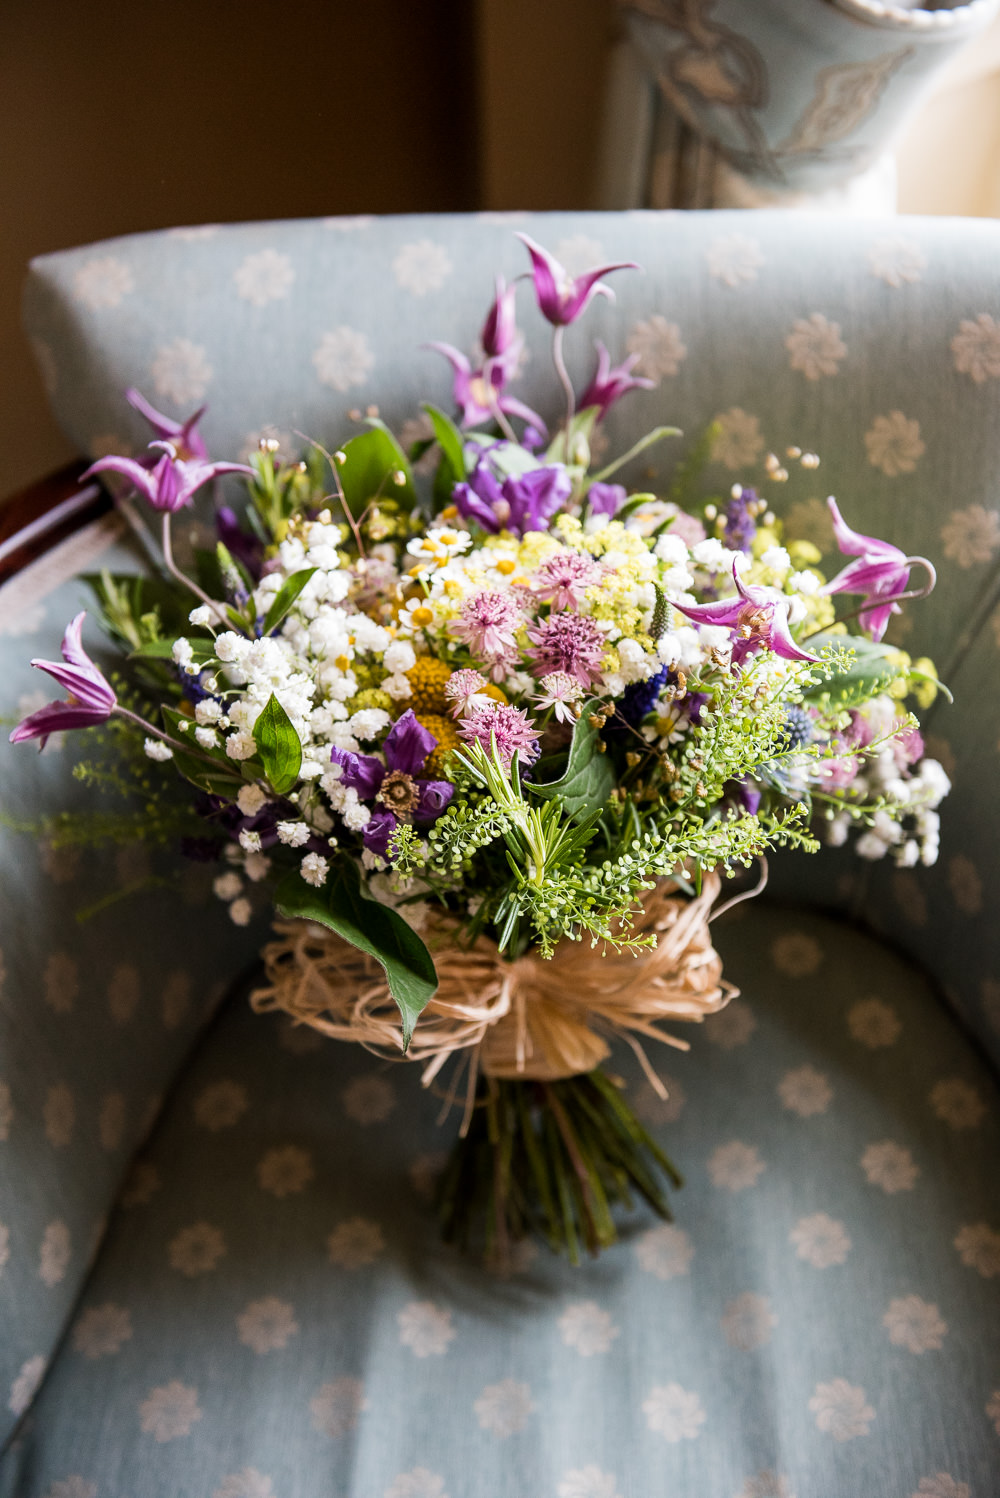 Bride Bridal Wildflower Bouquet Daisy Inkersall Grange Farm Wedding Jessica Grace Photography